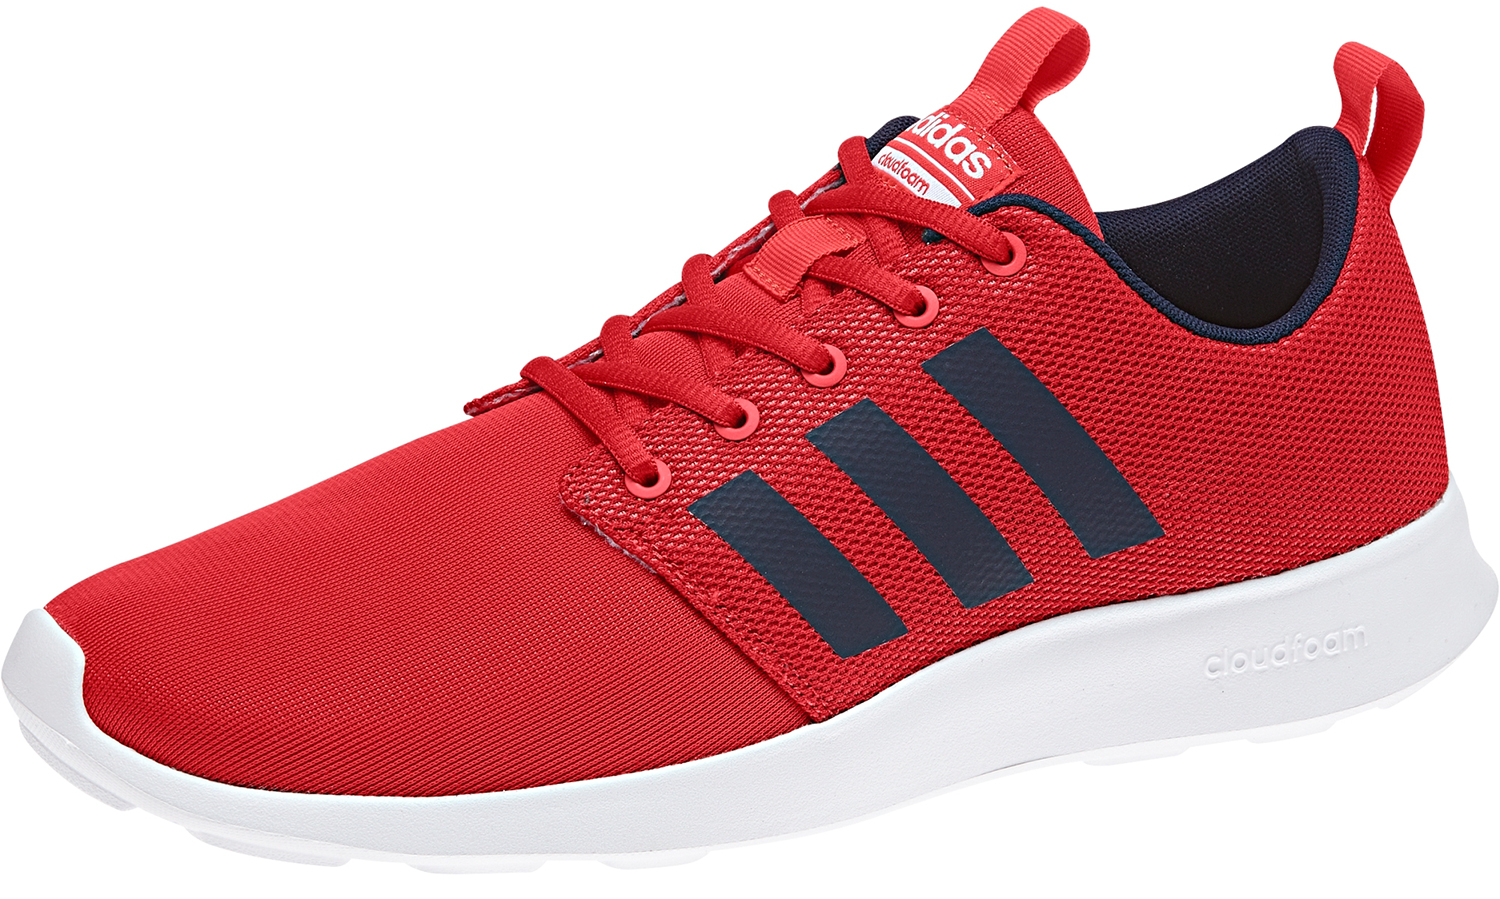 the latest 9b4aa d6110 ADIDAS SWIFT Racer sneakers Scarpe da corsa Ginnastica db0700 Rosso Nero  NUOVO - mainstreetblytheville.org